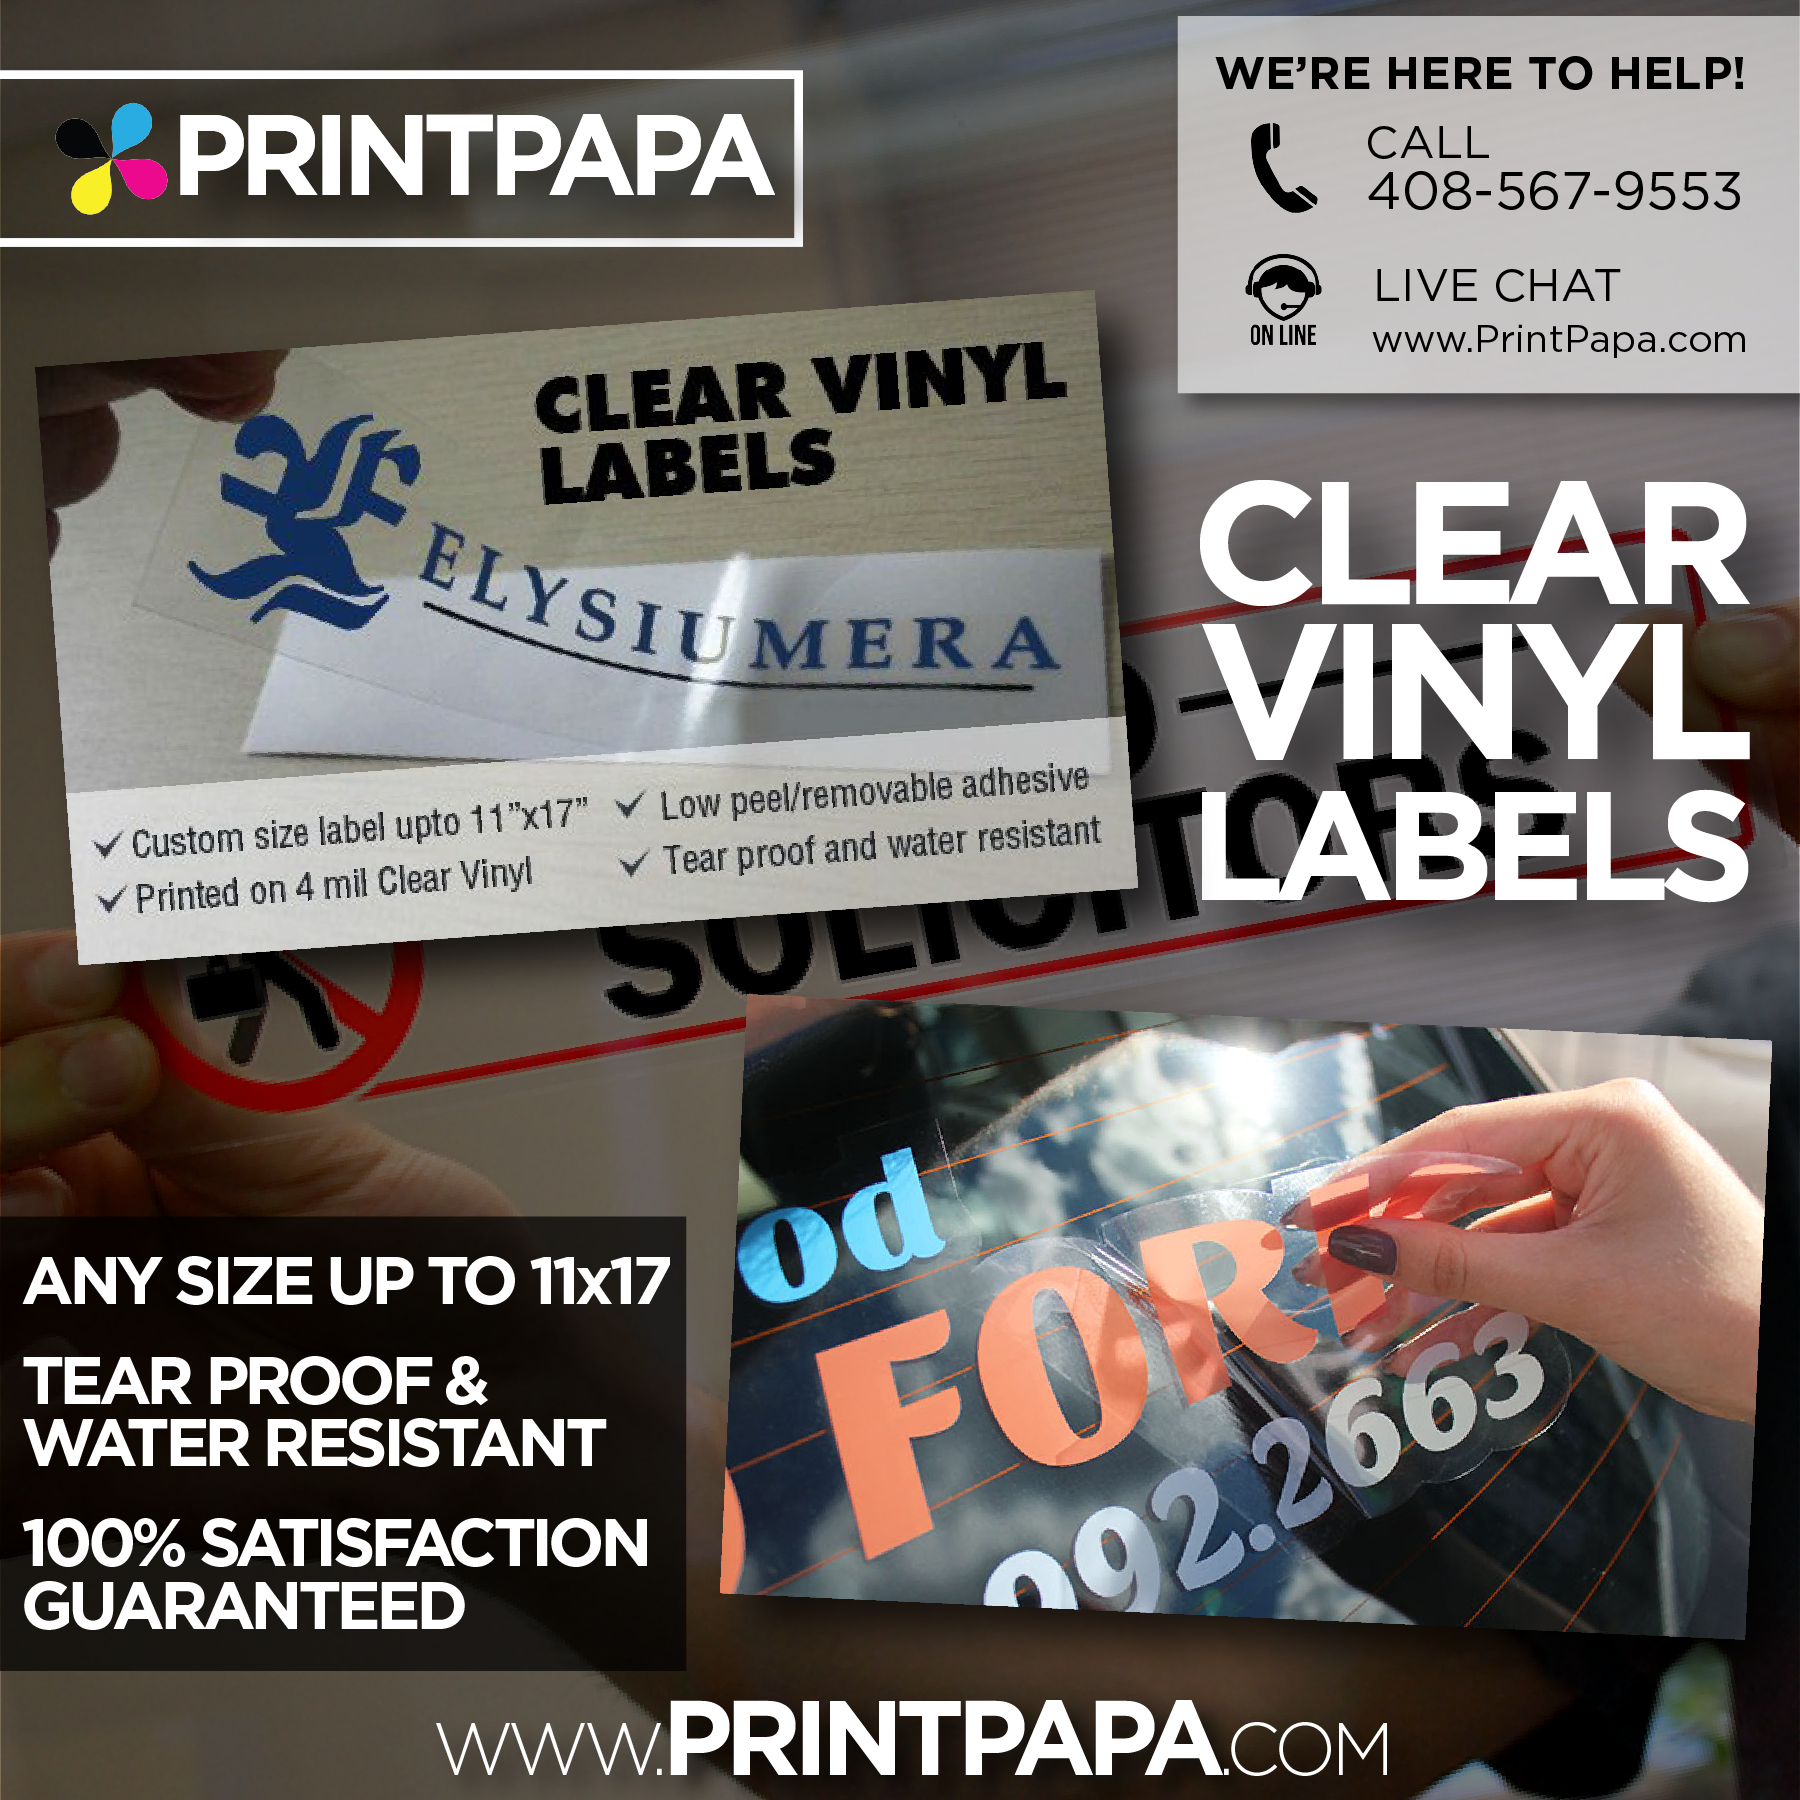 Promote Your Business Window Signage Or Next Big Event With Printpapa S Clear Vinyl Labels Adhesive Can Be On Front Or Back Vinyl Labels Clear Vinyl Vinyl